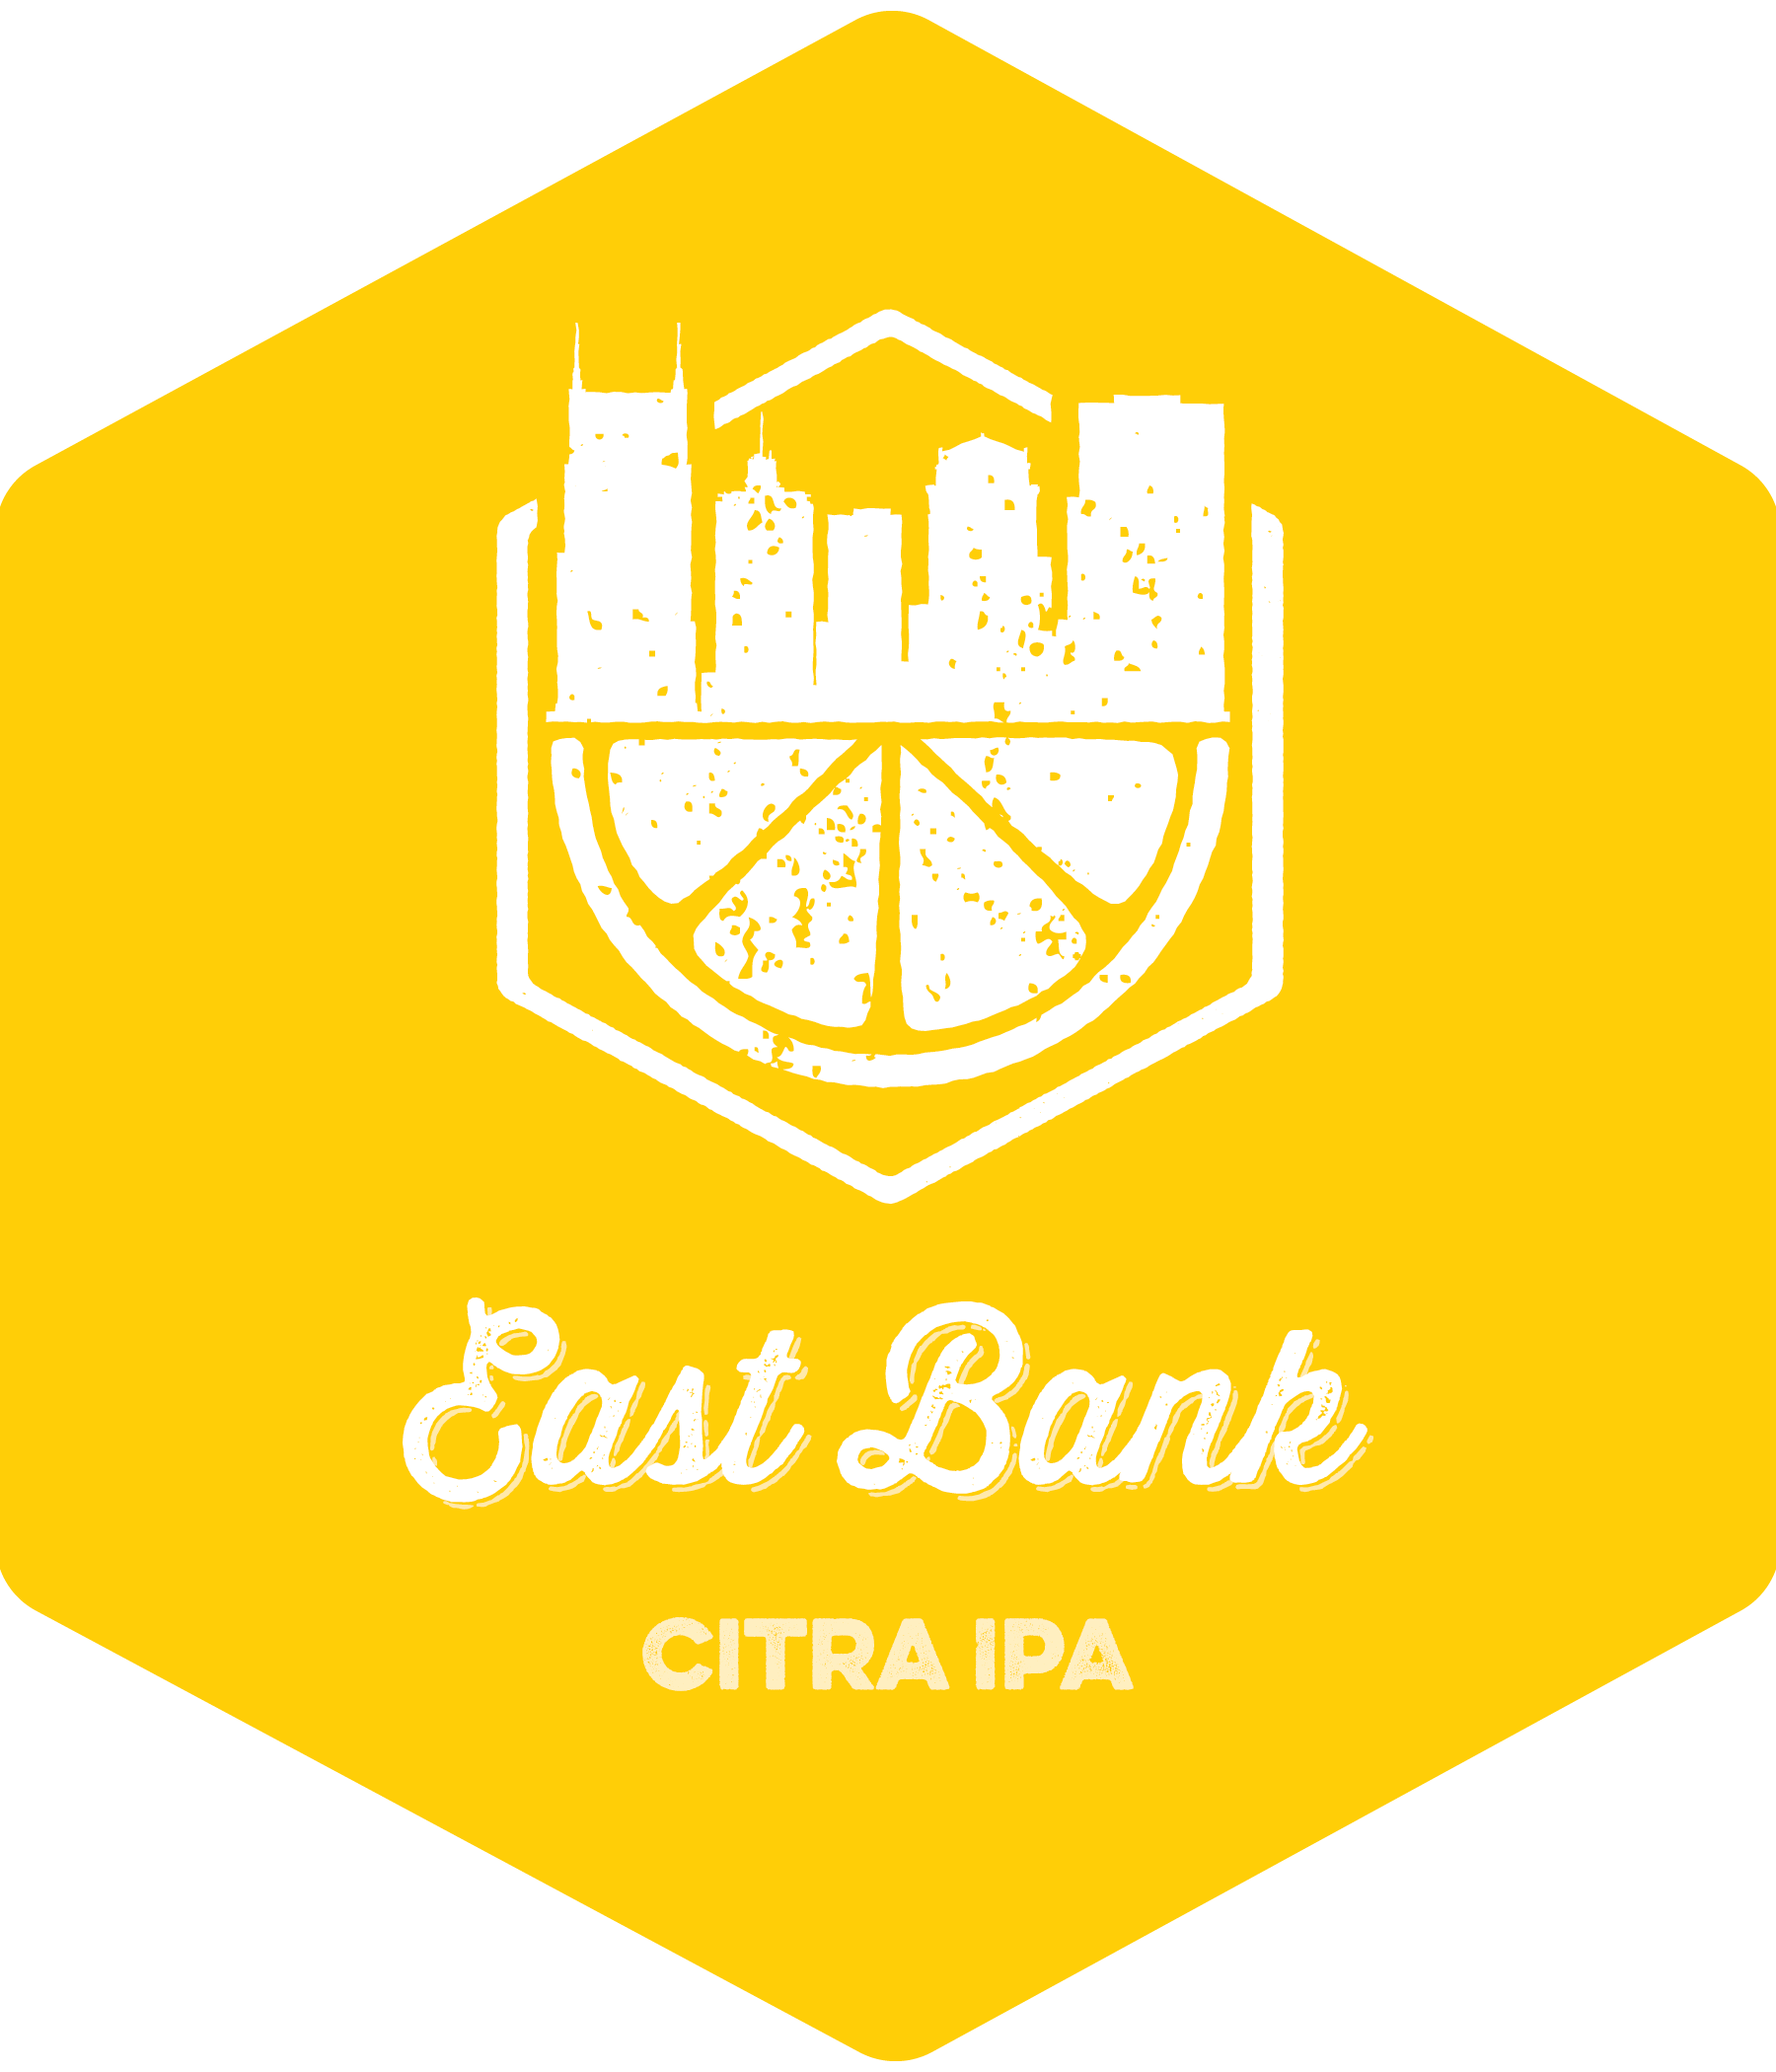 East+bank+citra